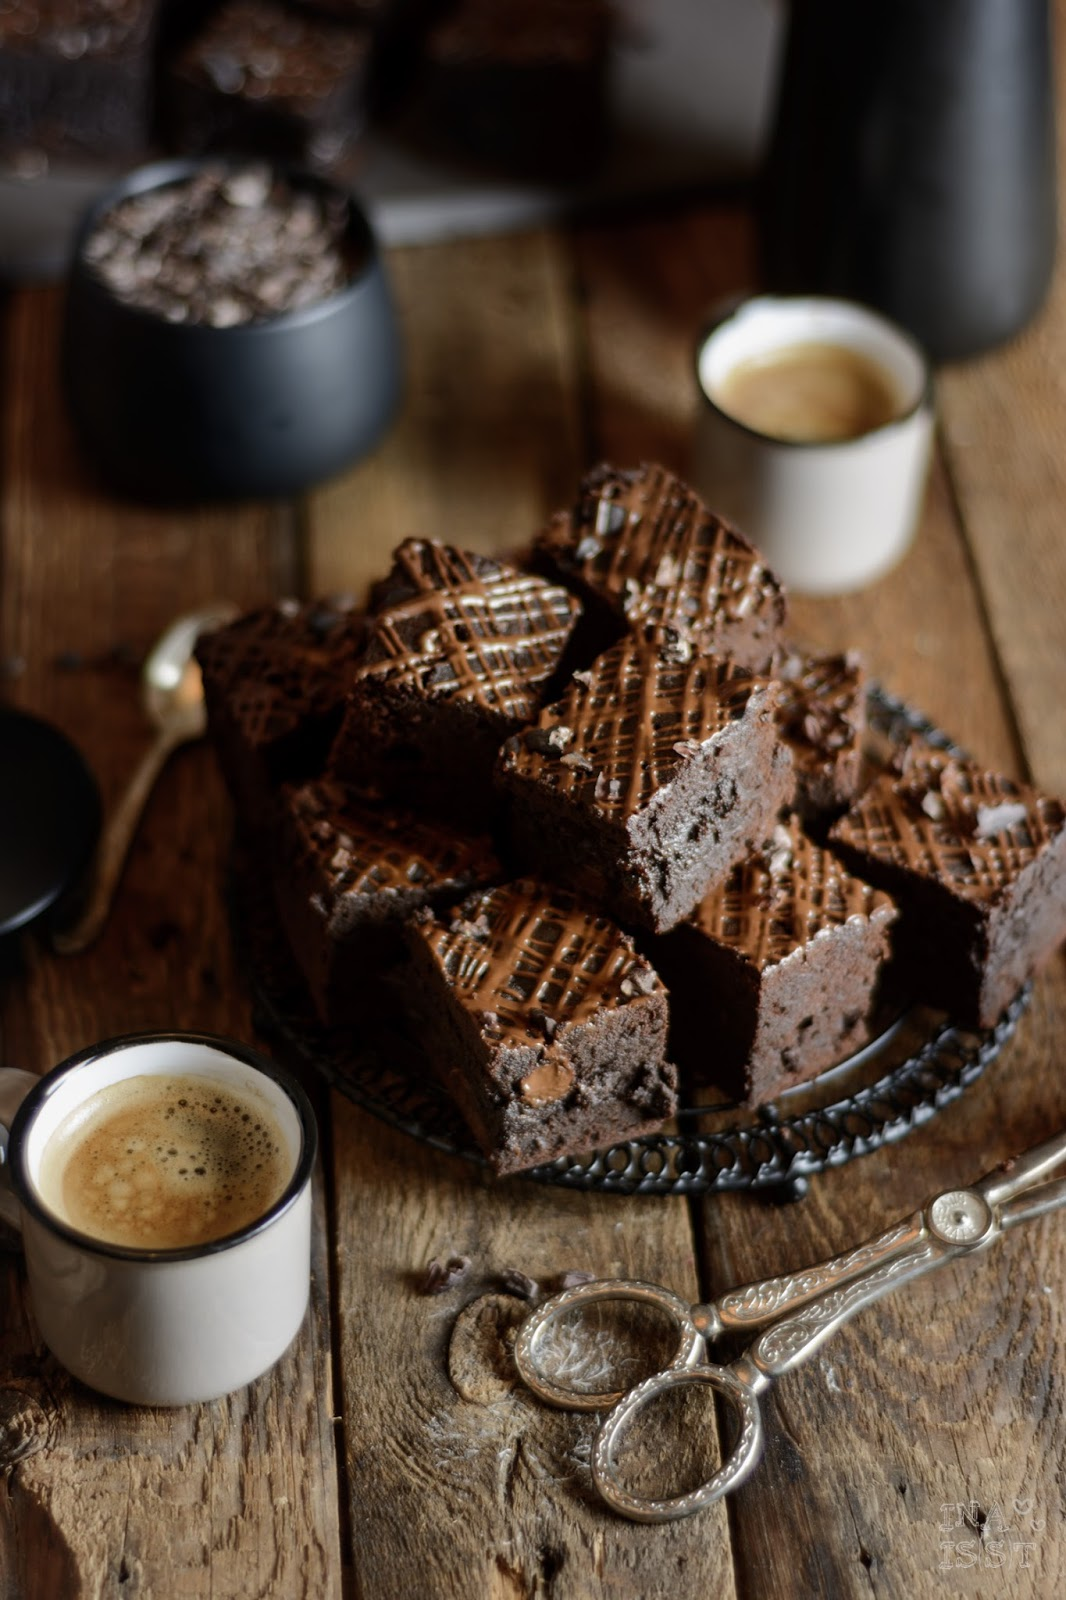 Espresso-Brownies mit dunkler Schokolade und rohen Kakaonibs, Mokko Brownies, Espresso Brownies, Brownie Rezept, Ina Is(s)t